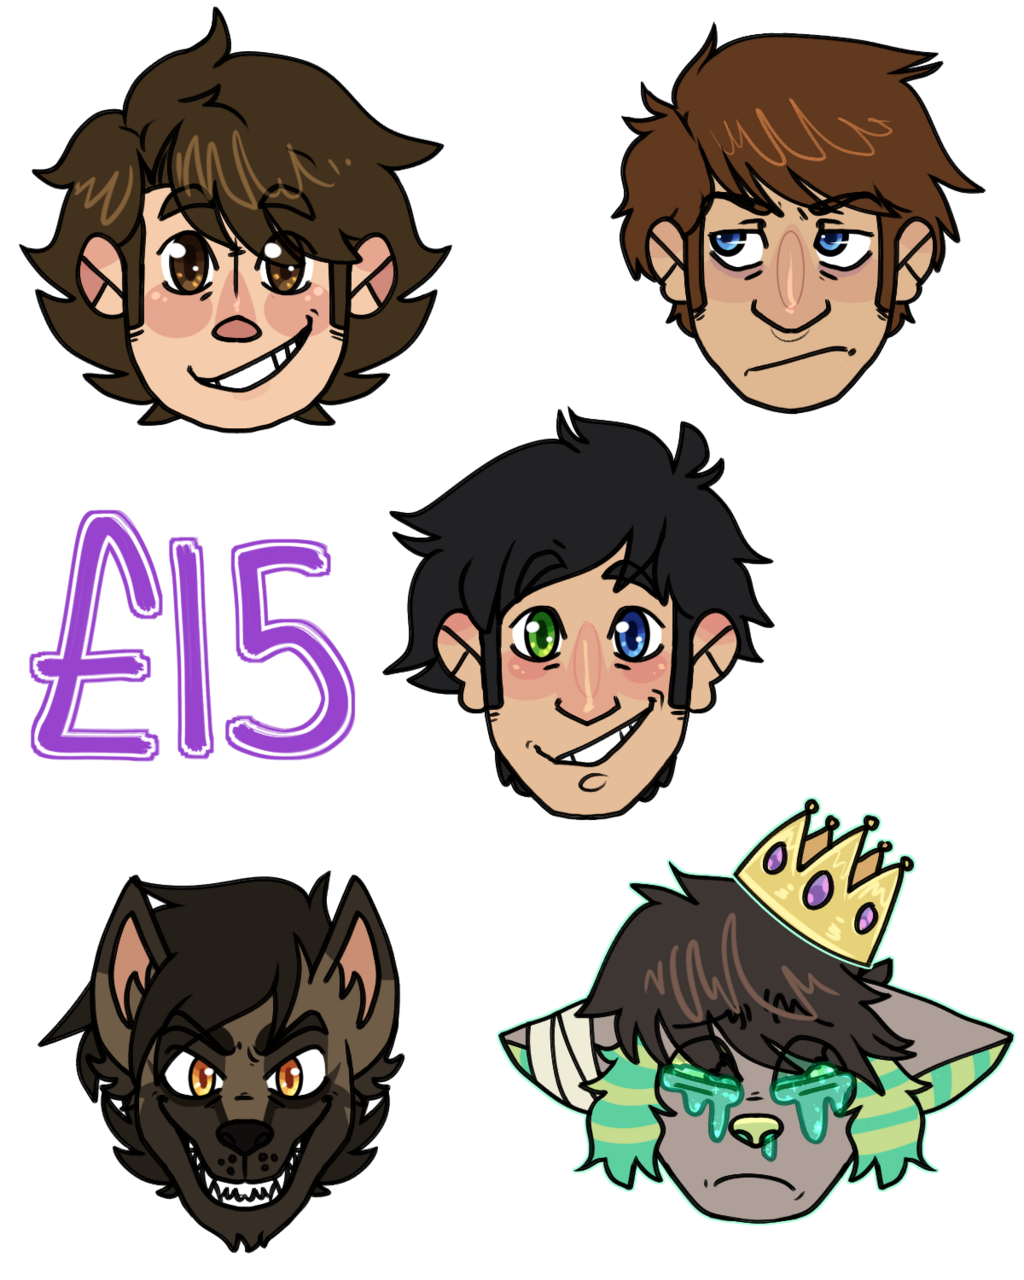 Most recent image: Sticker Style Commissions